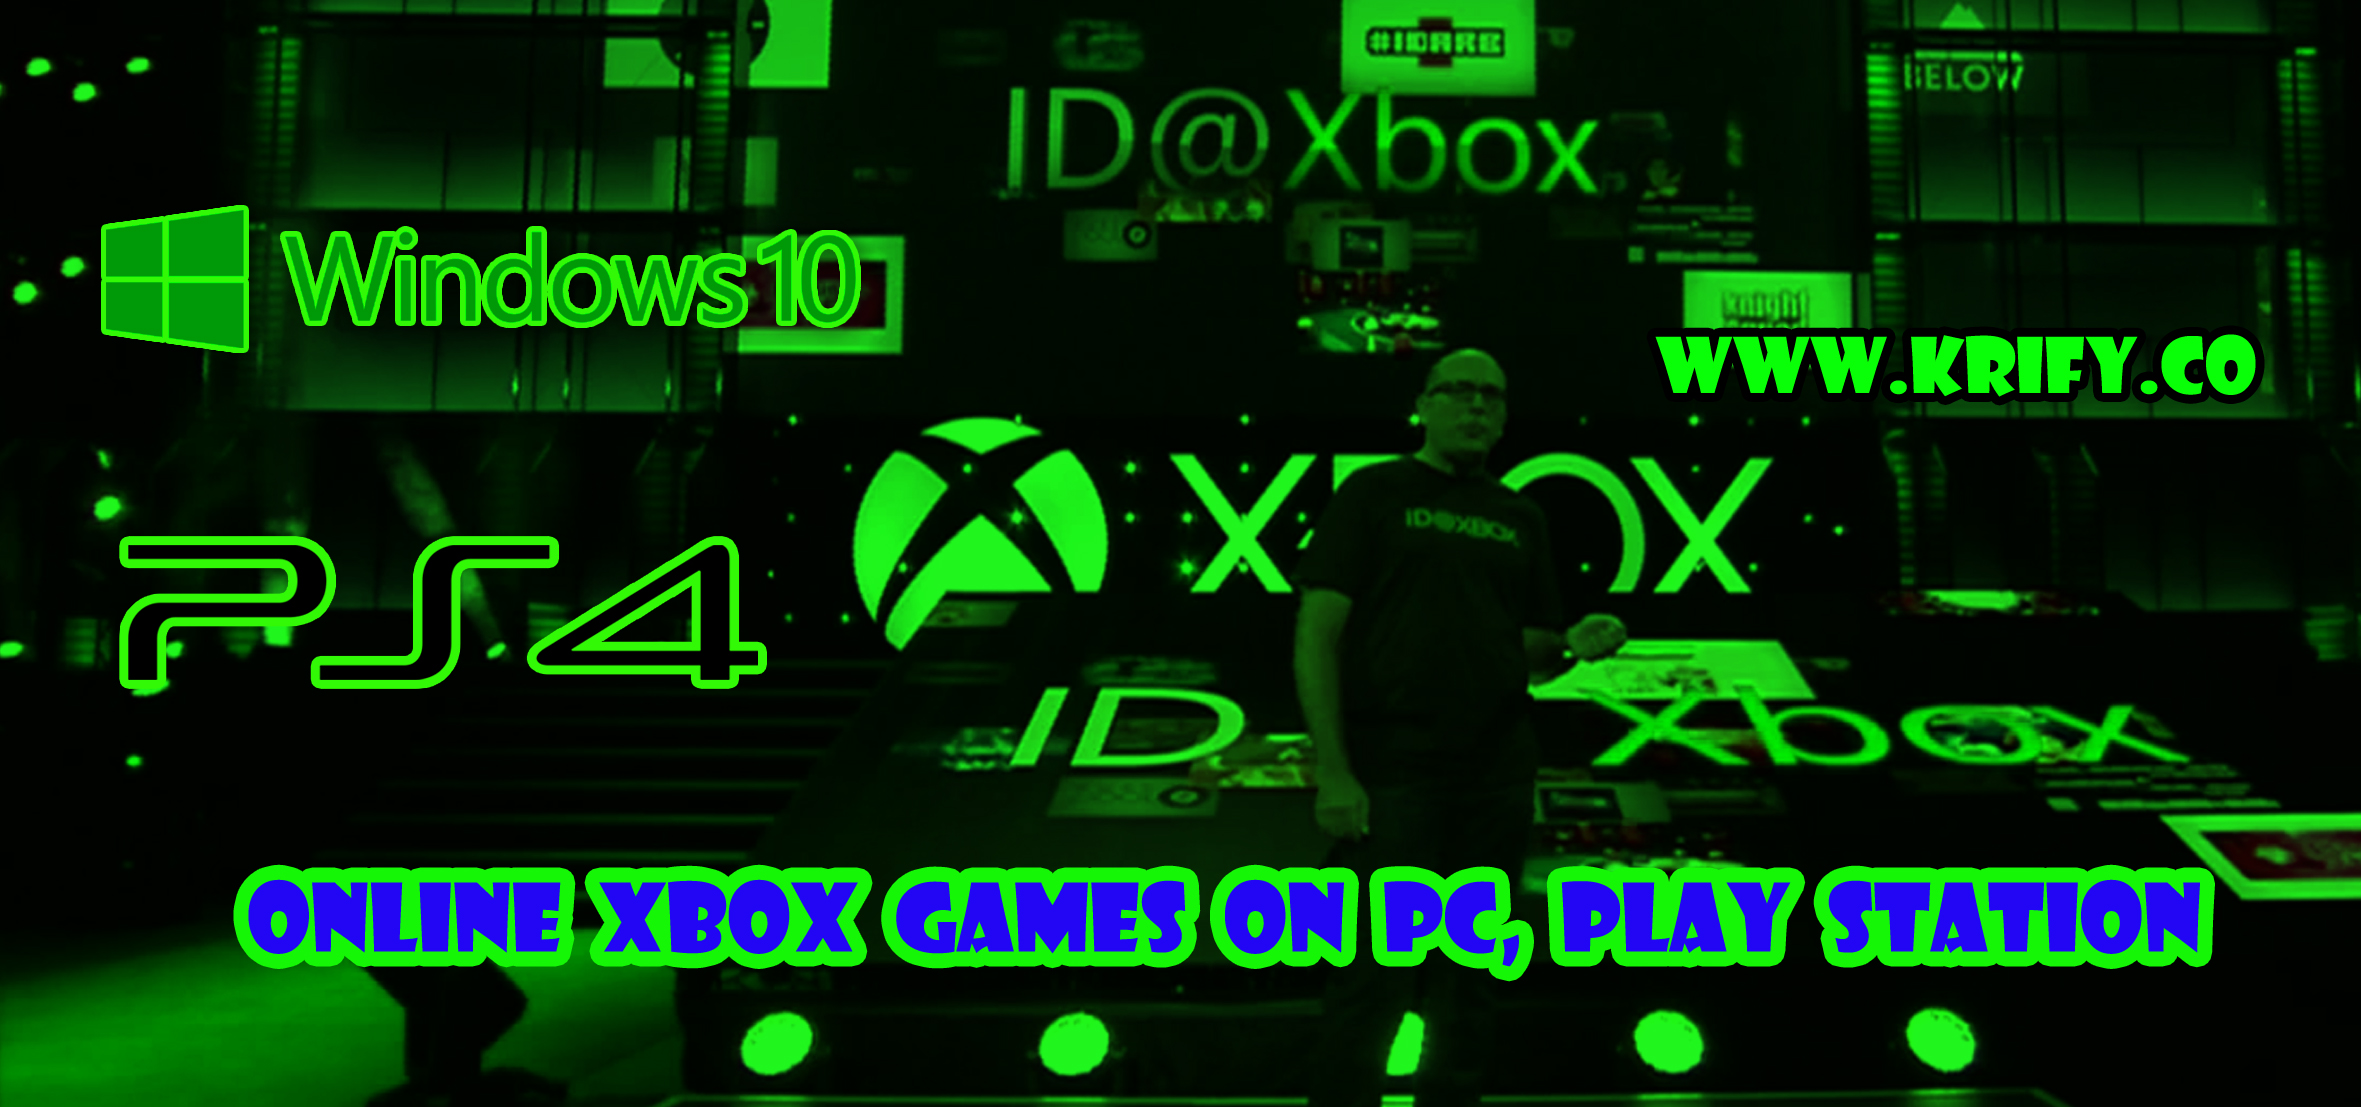 Play Online Xbox Games on PC, Play Station #Challenge X-Box Lovers